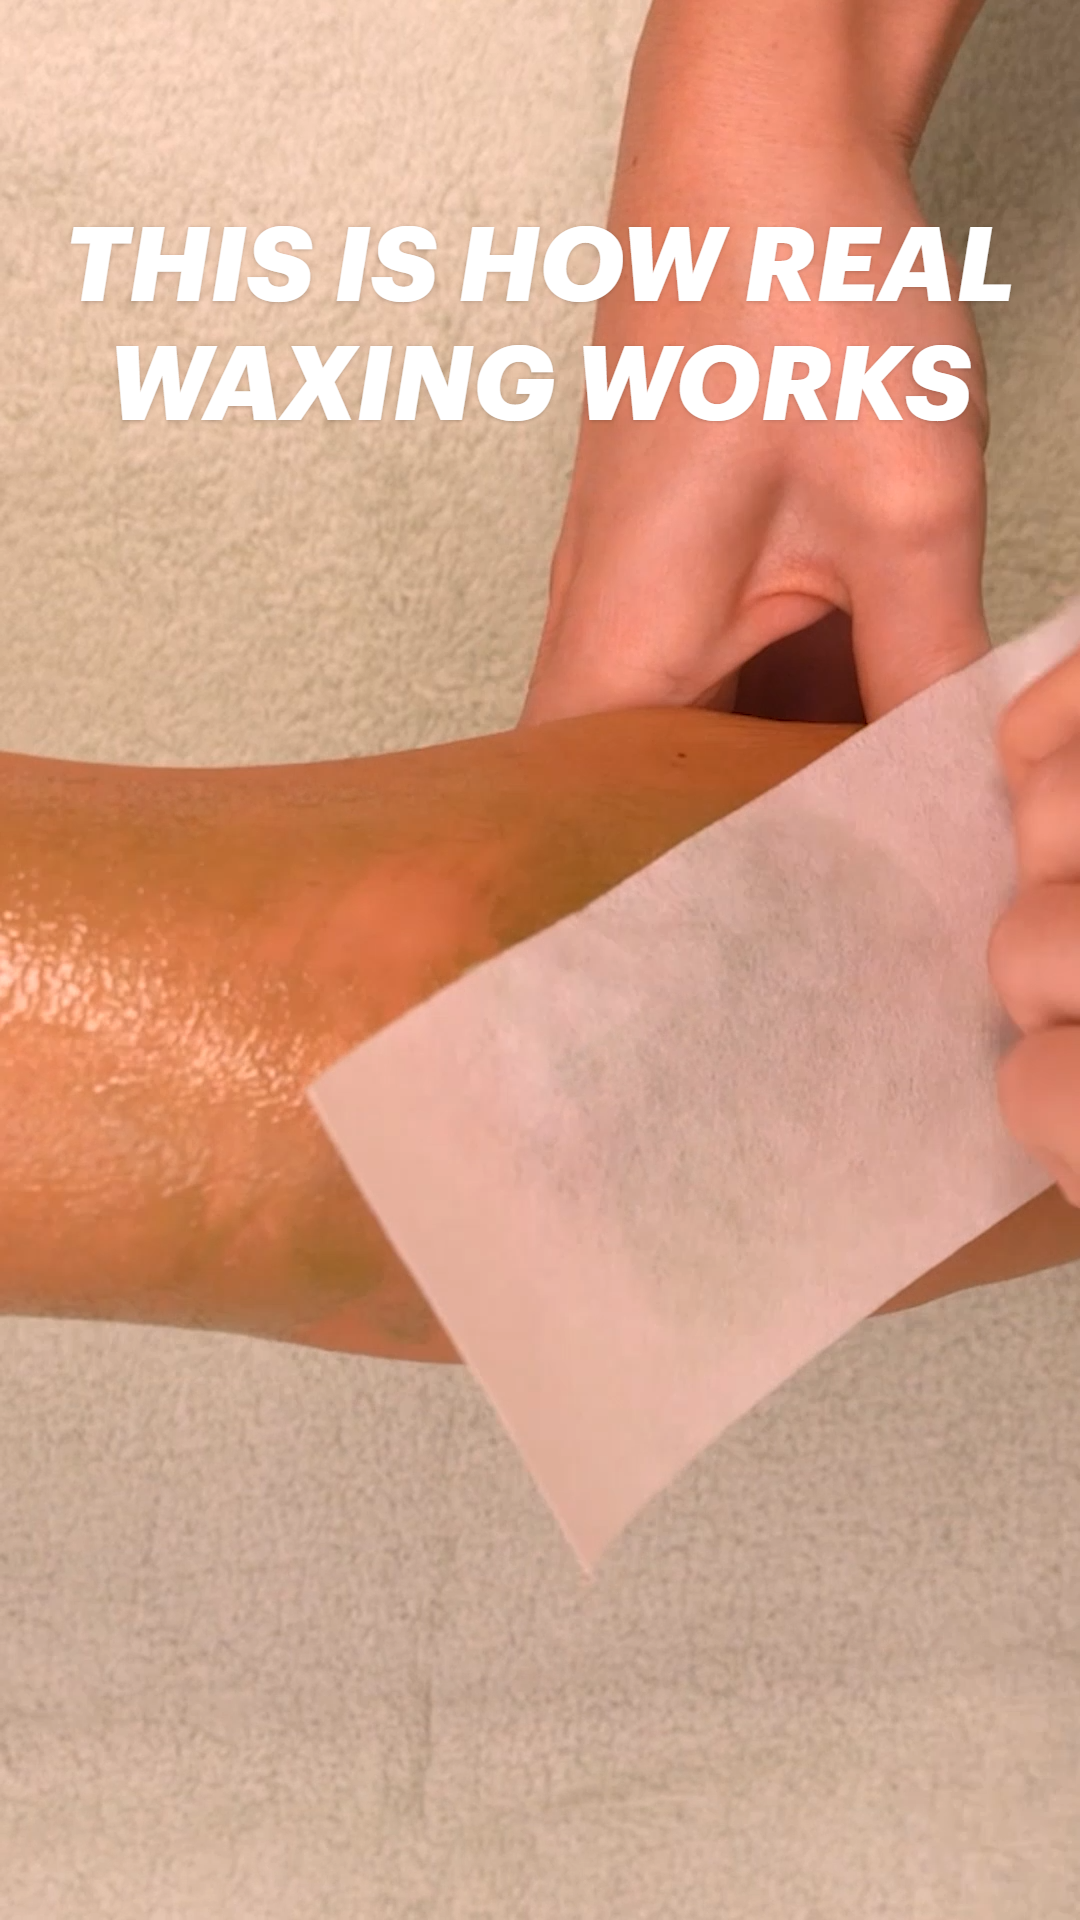 THIS IS HOW REAL WAXING WORKS